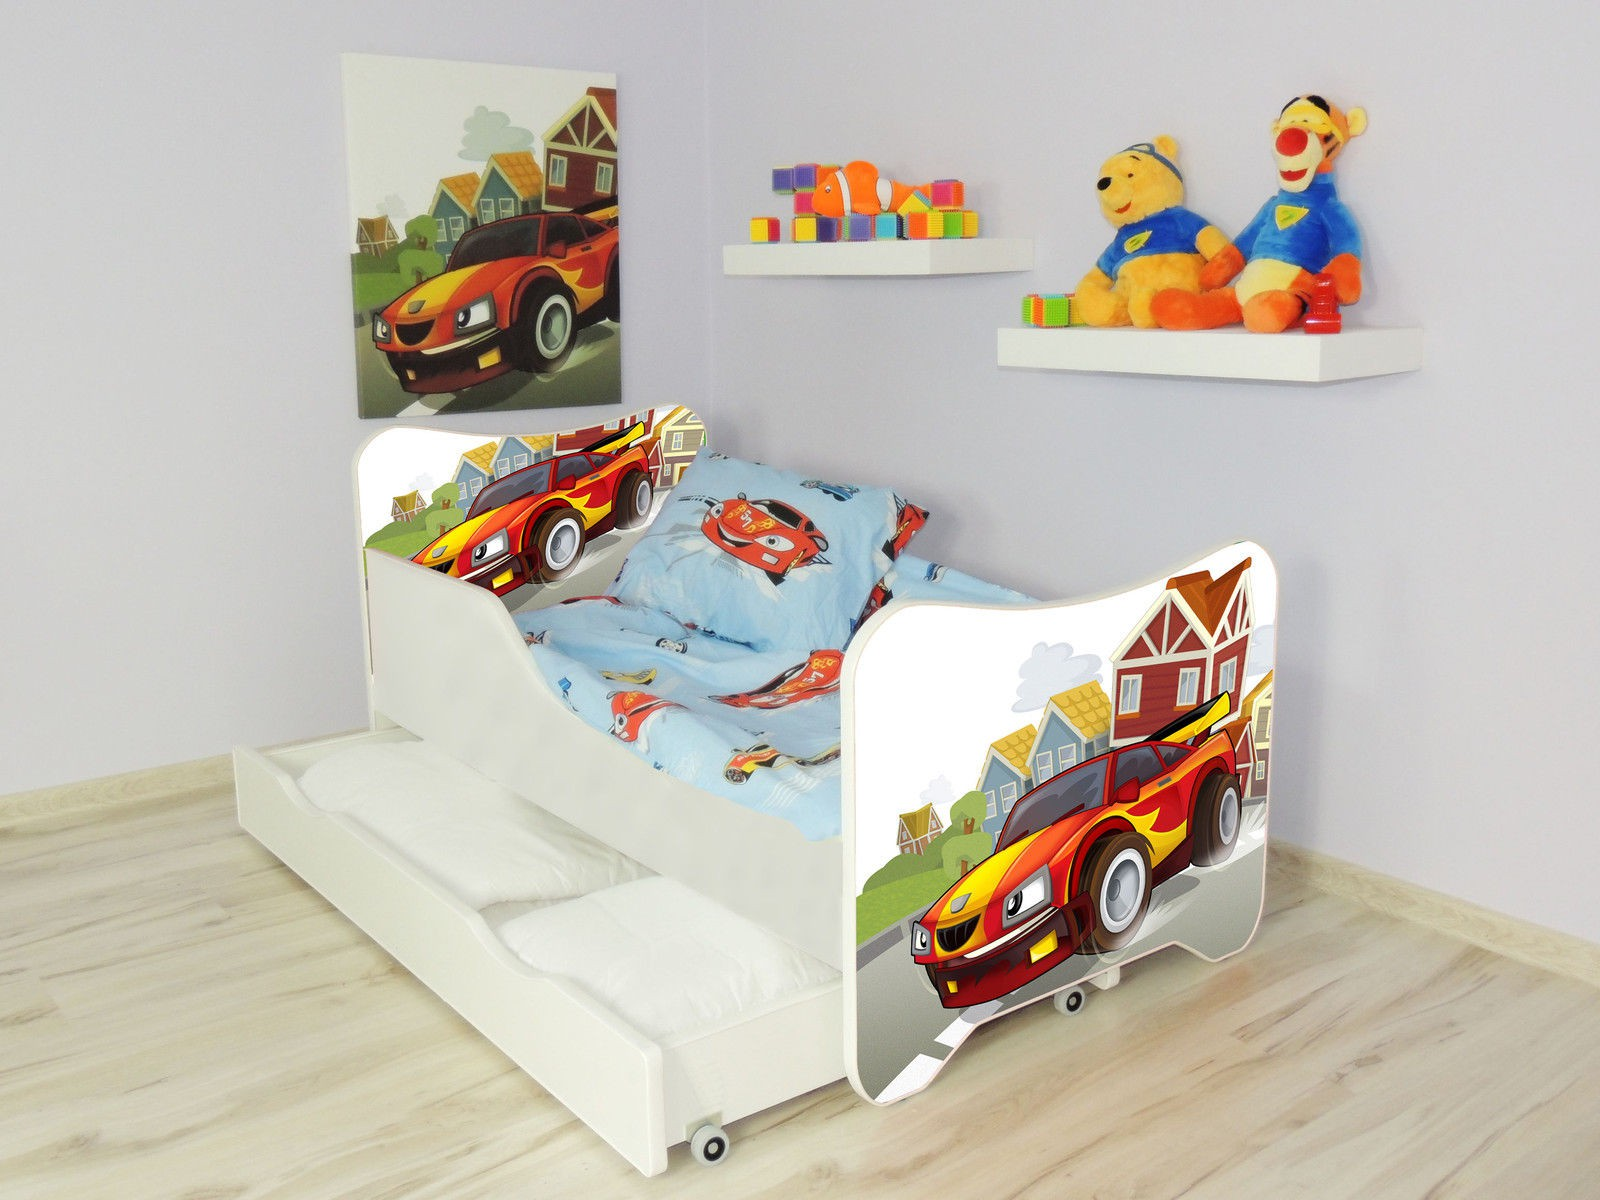 lit enfant et b b 160 x 80 cm avec matelas et tiroirs racing car p. Black Bedroom Furniture Sets. Home Design Ideas